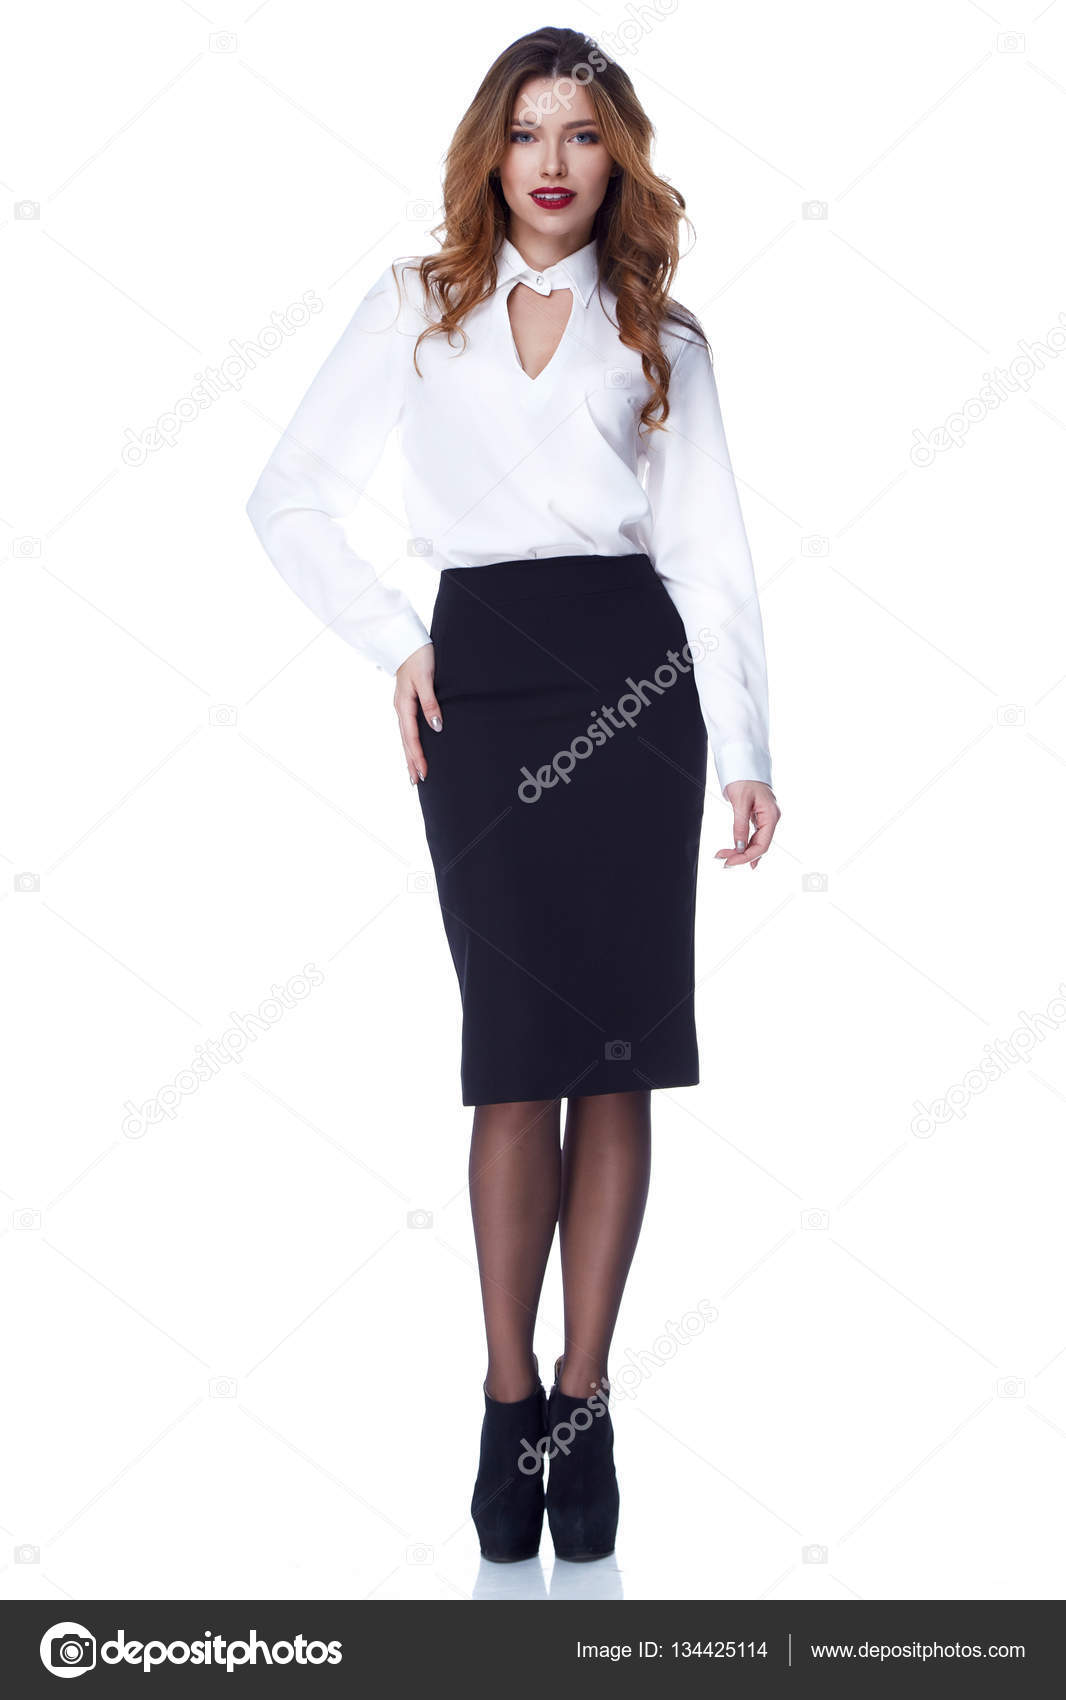 f6eb8bfc2 Beautiful sexy woman fashion clothes for businesswoman office manager style  long blond hair makeup perfect body shape lady wear silk white blouse and  black ...